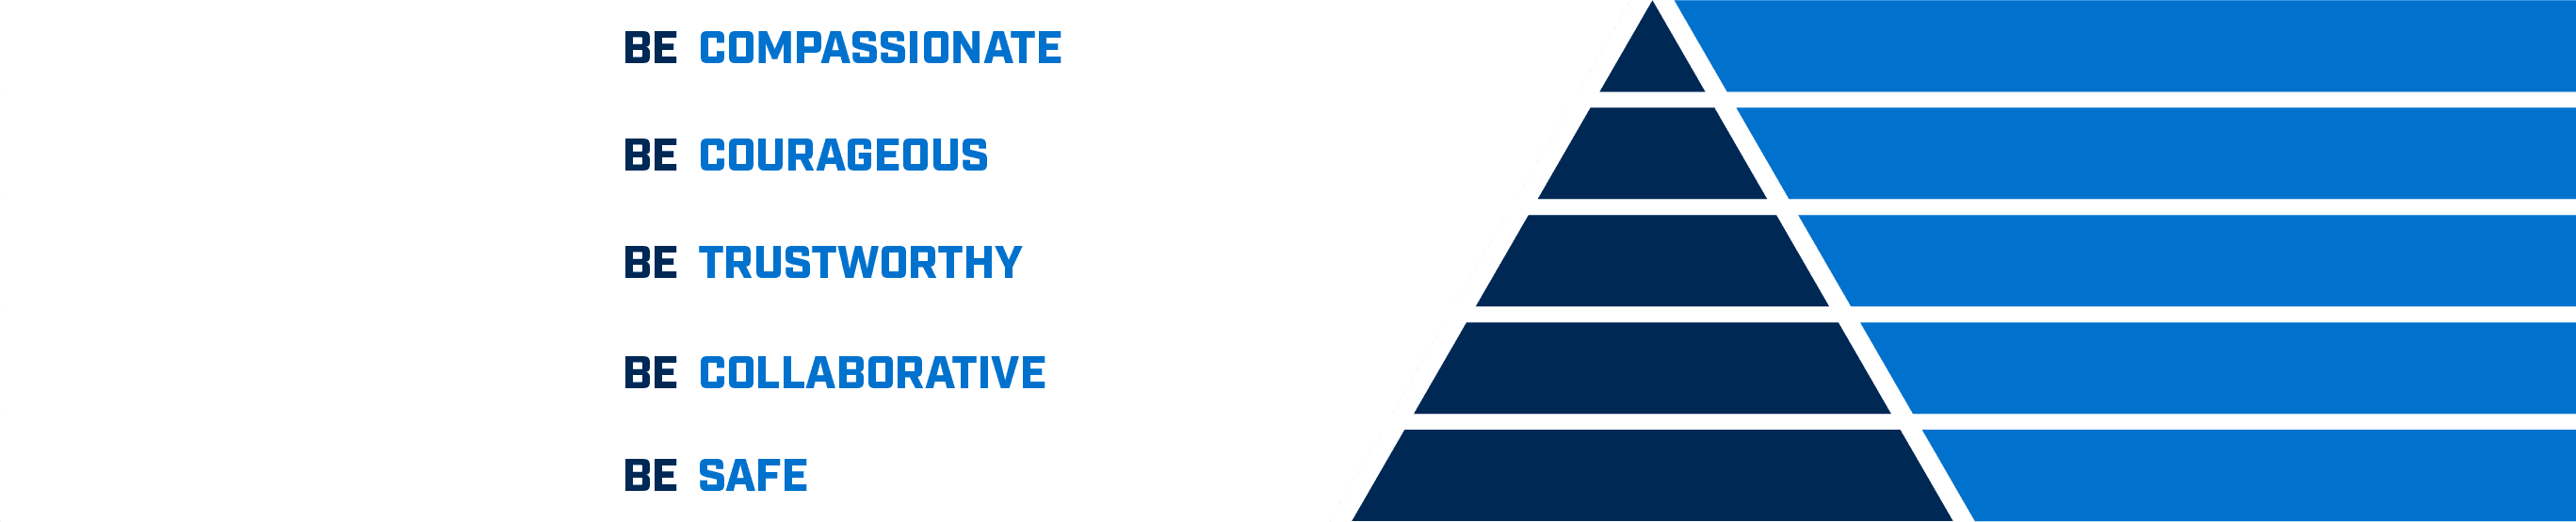 Charge pyramid of core values